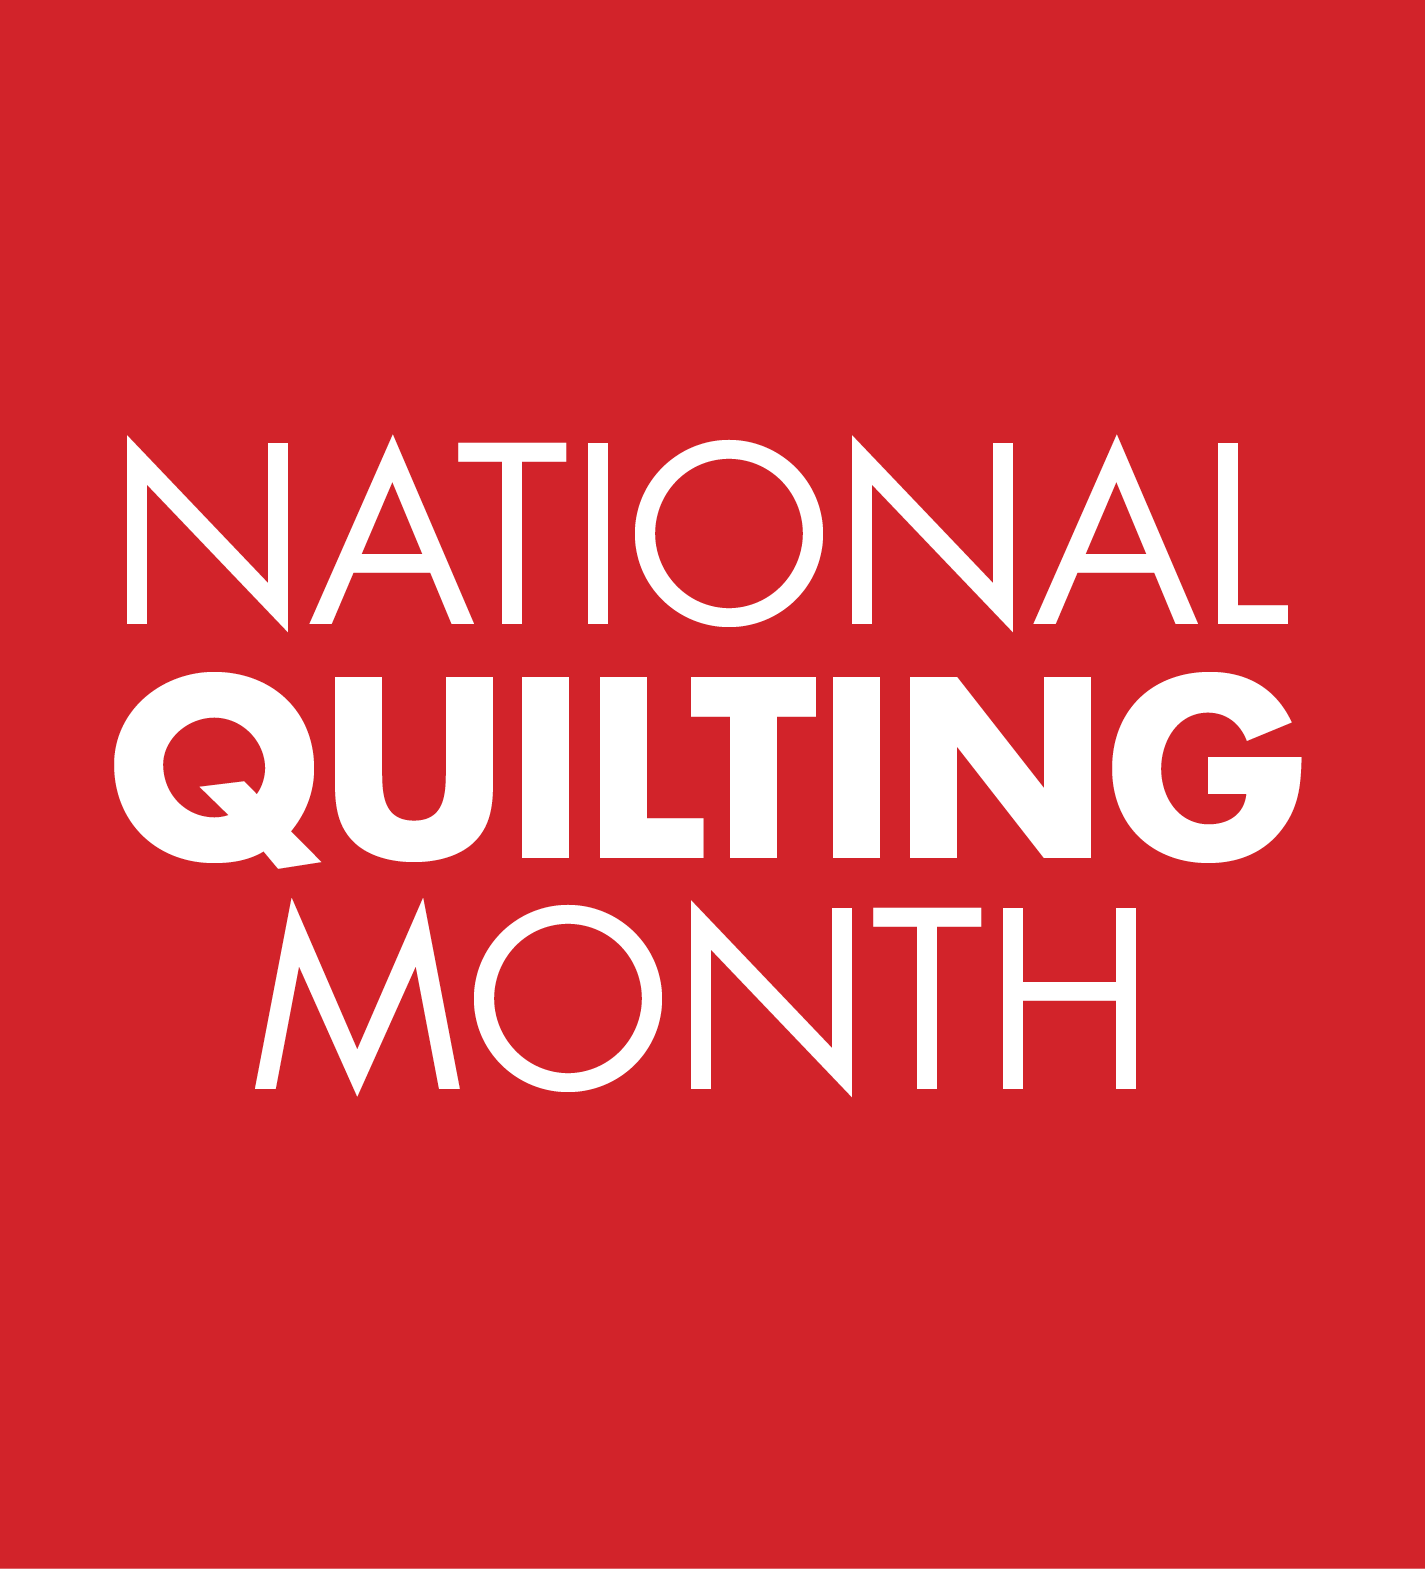 March is National Quilting Month!